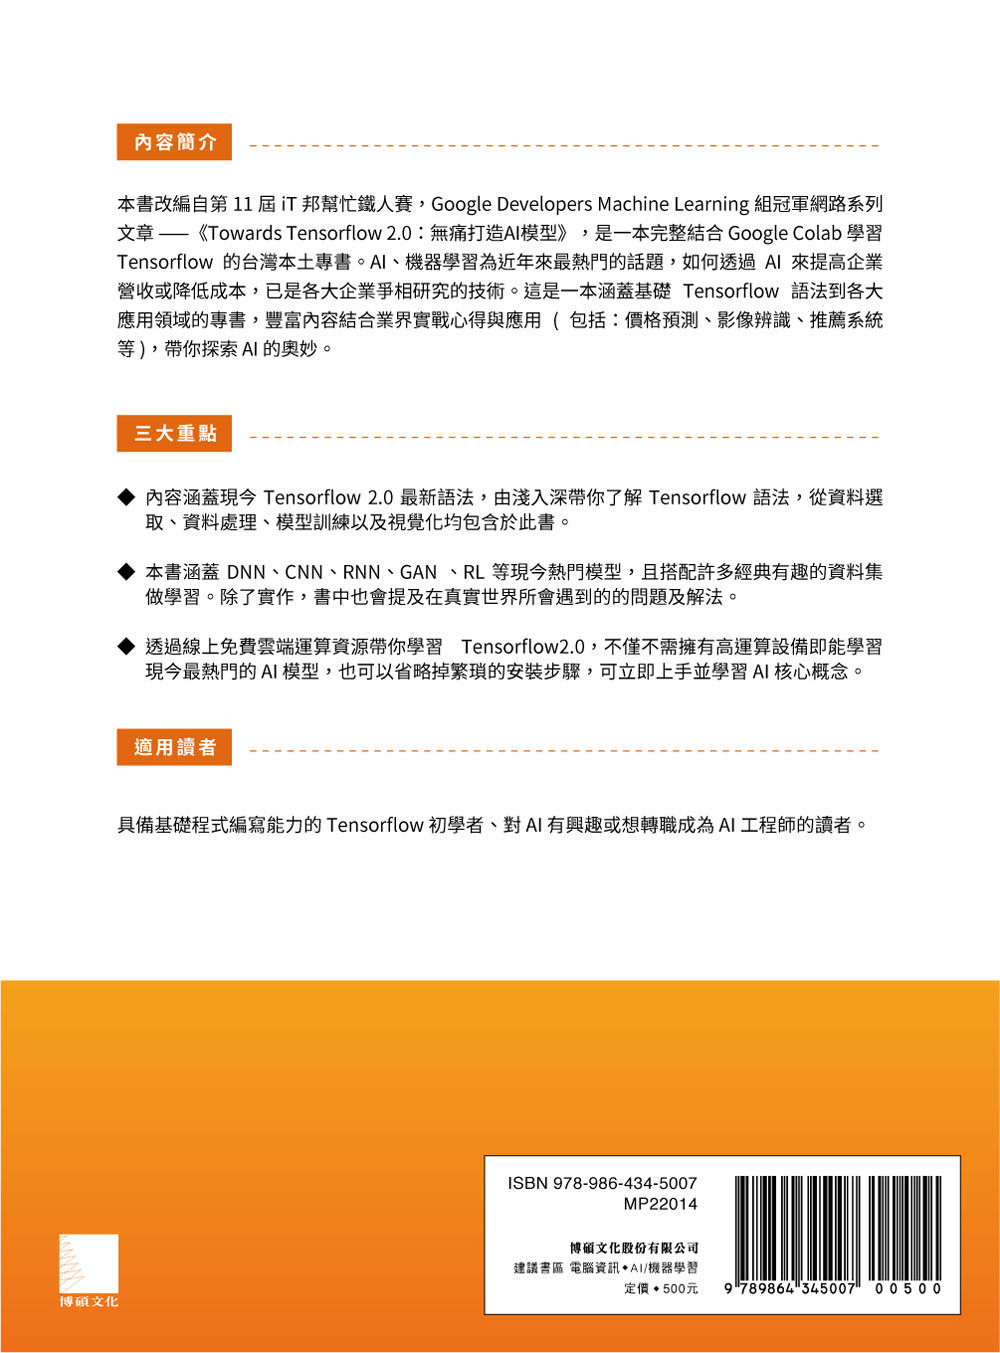 Towards Tensorflow 2.0:無痛打造AI模型(iT邦幫忙鐵人賽系列書)-preview-16